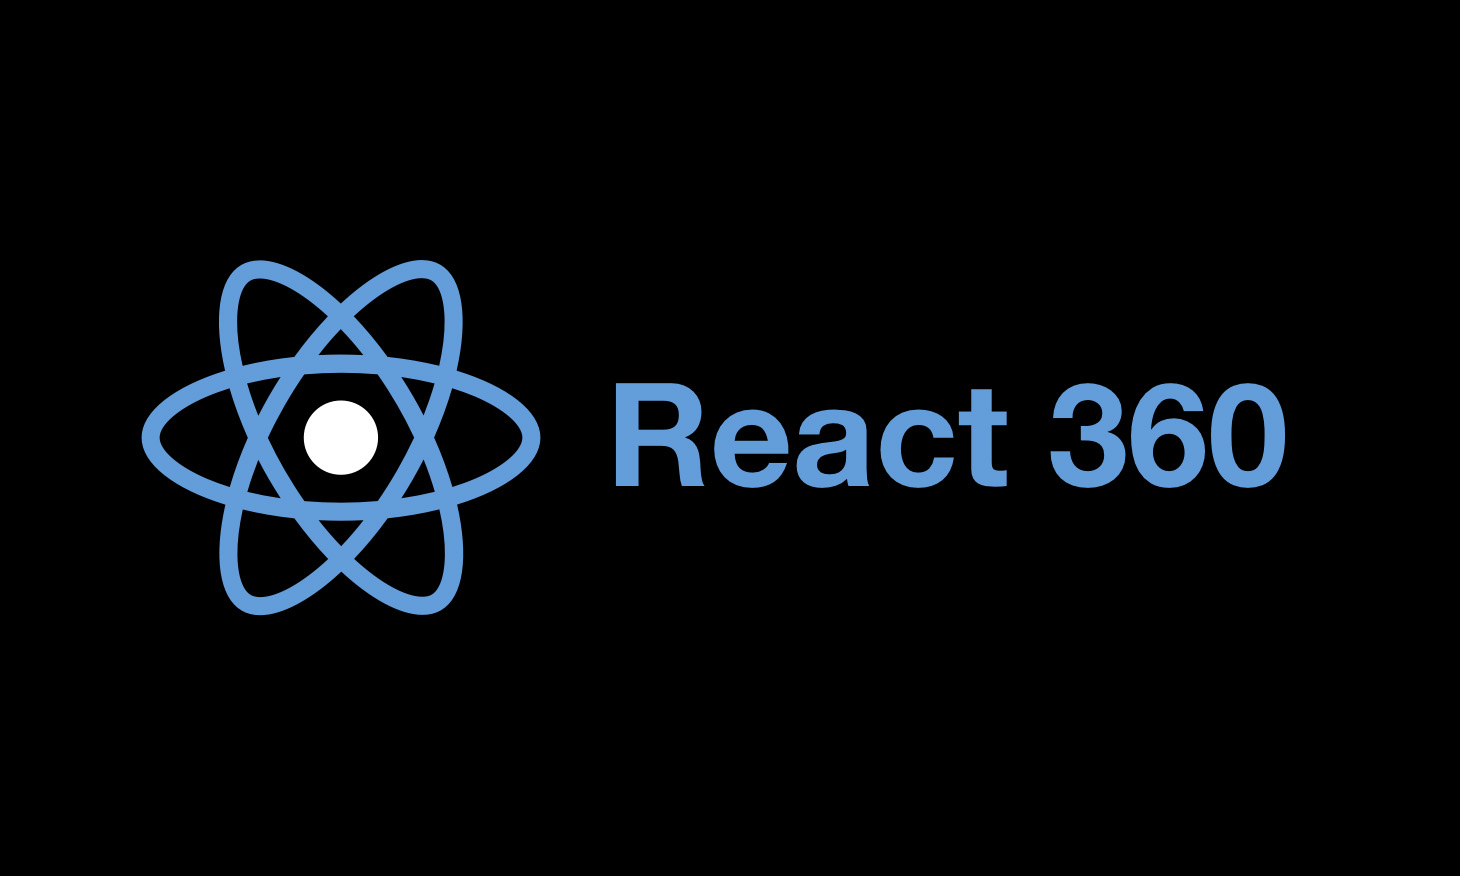 React 360 replaces React VR for streamlined development focus - Facebook  Engineering